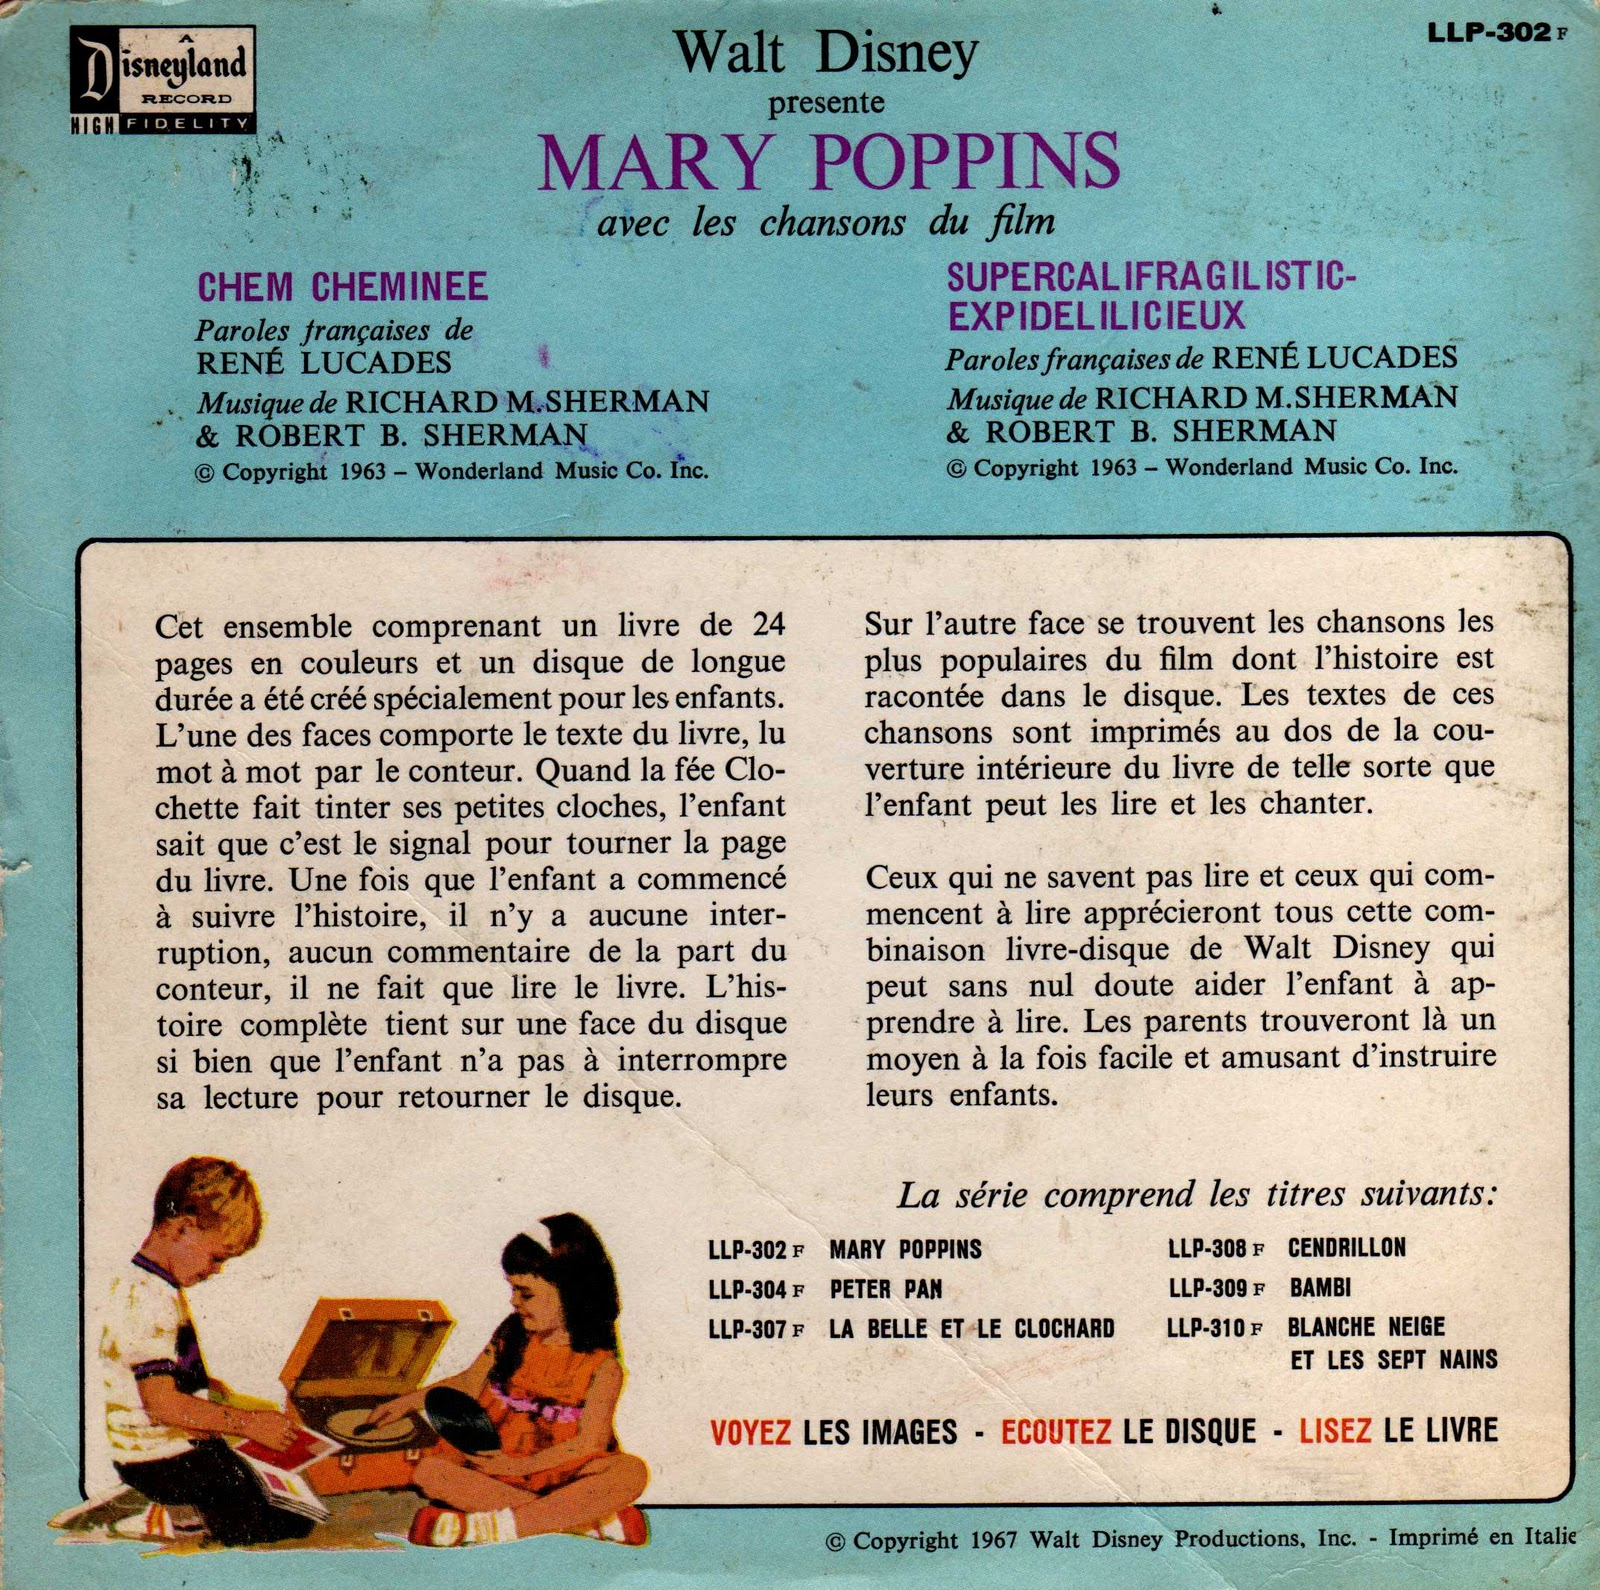 Chem Cheminée Paroles En Broc Llp 302 F Mary Poppins Disneyland Records 1967